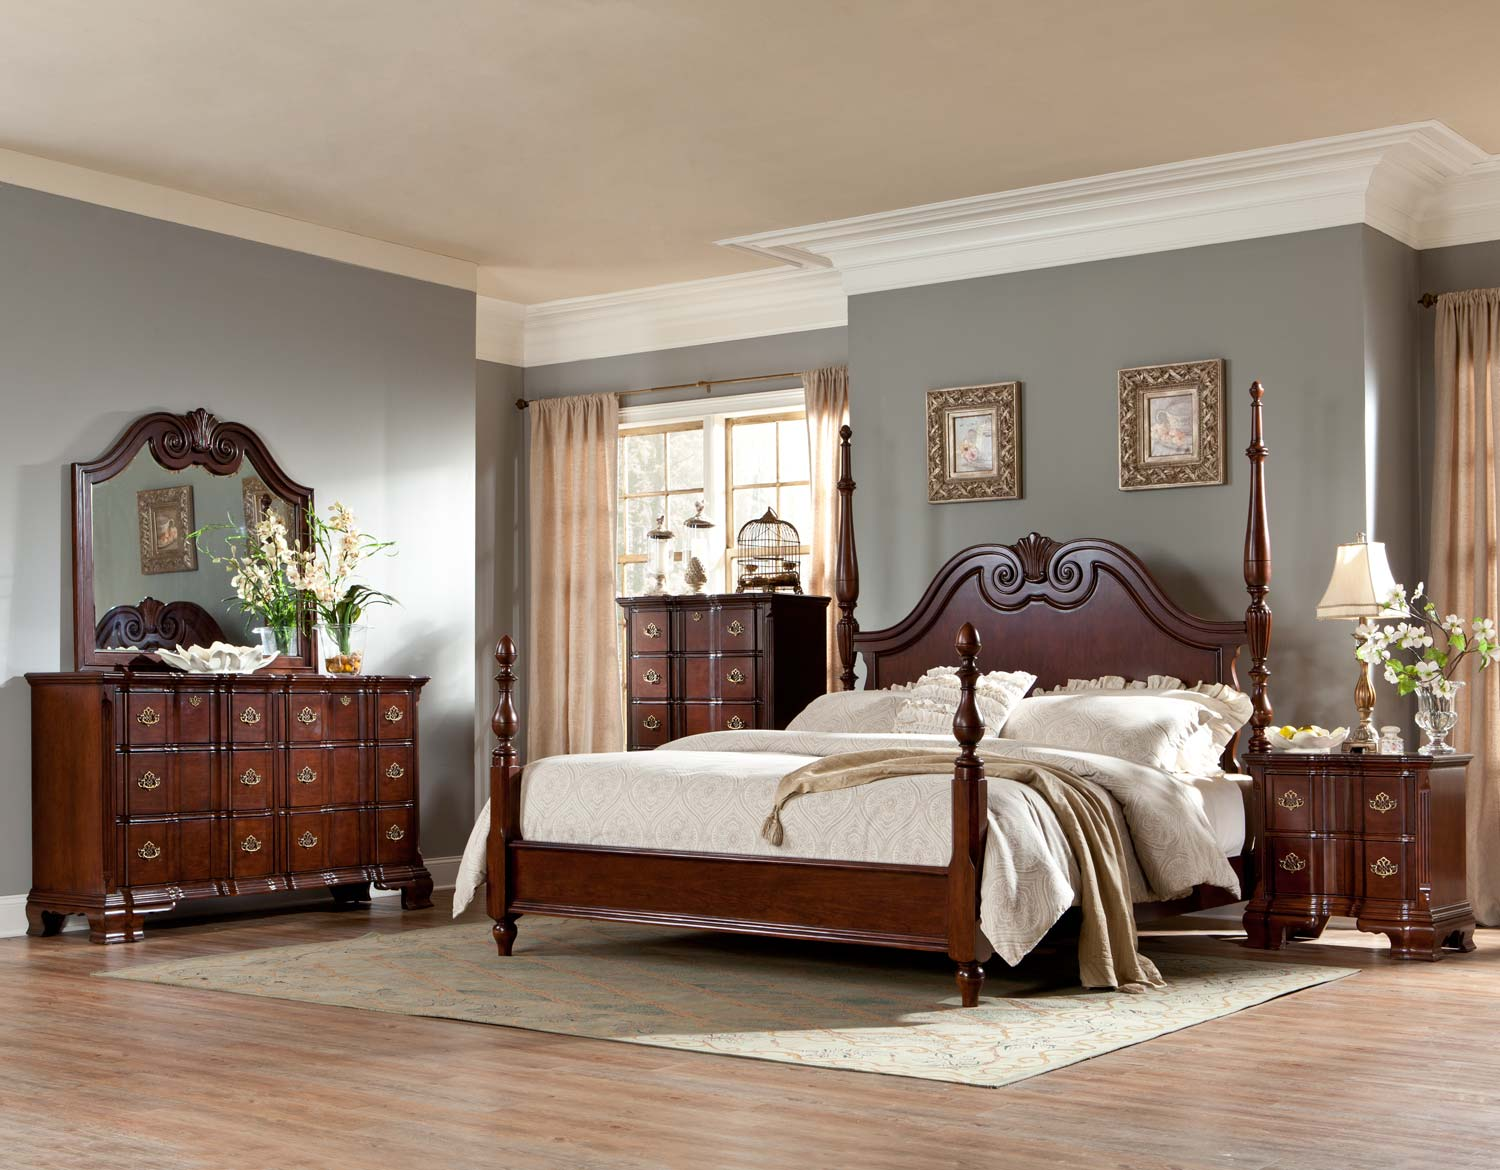 Homelegance Guilford Poster Bedroom Set Brown Cherry  : HE B2155 1SP BED SET from www.homelegancefurnitureonline.com size 1500 x 1170 jpeg 181kB